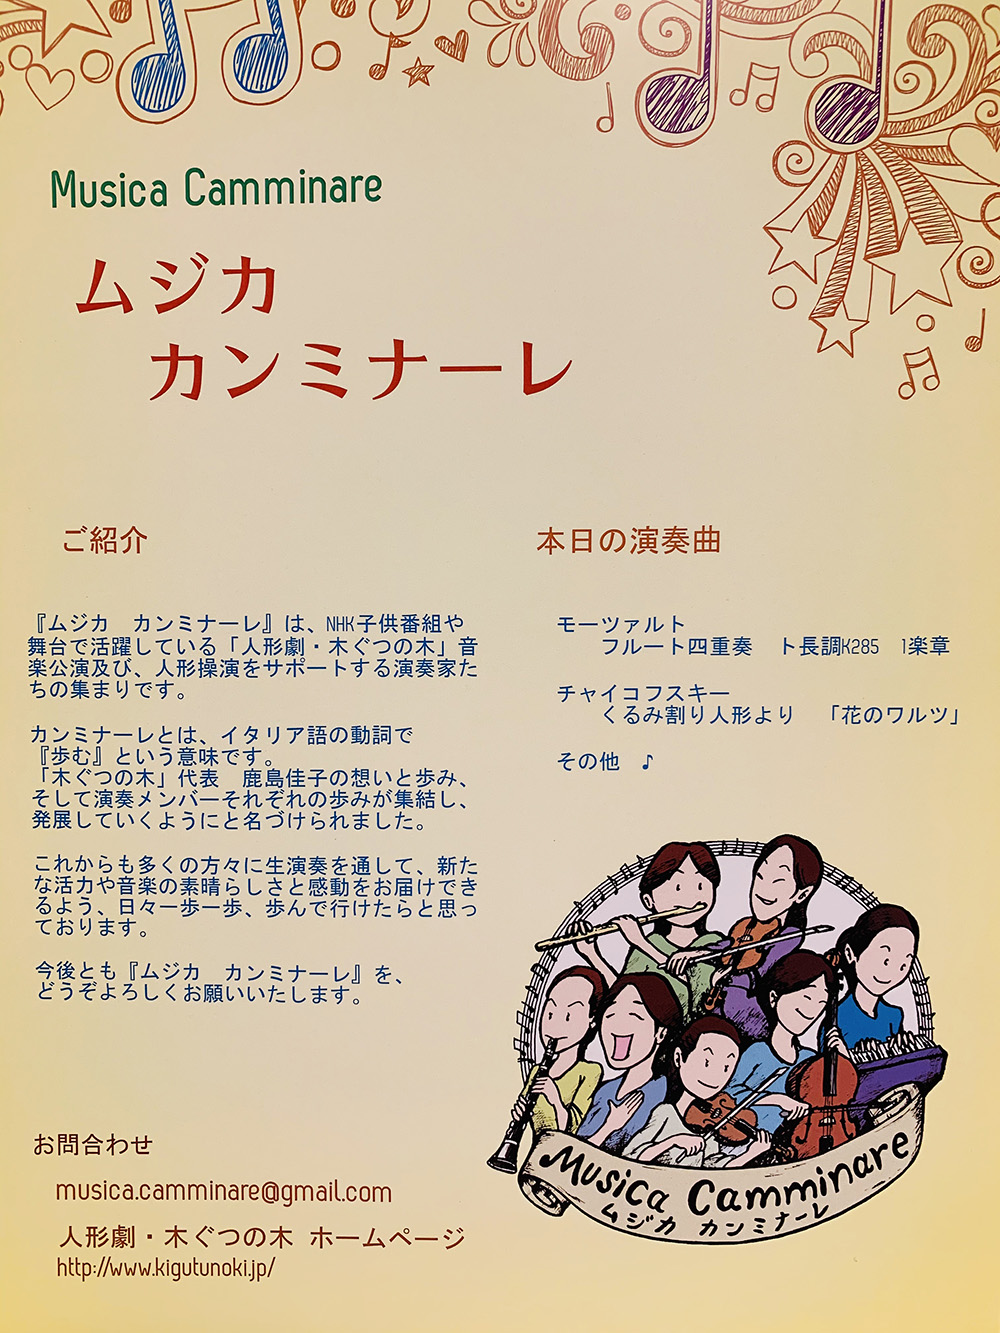 musica 1 - 2020年1月27日(月)東京母の会連合会の新春懇談会